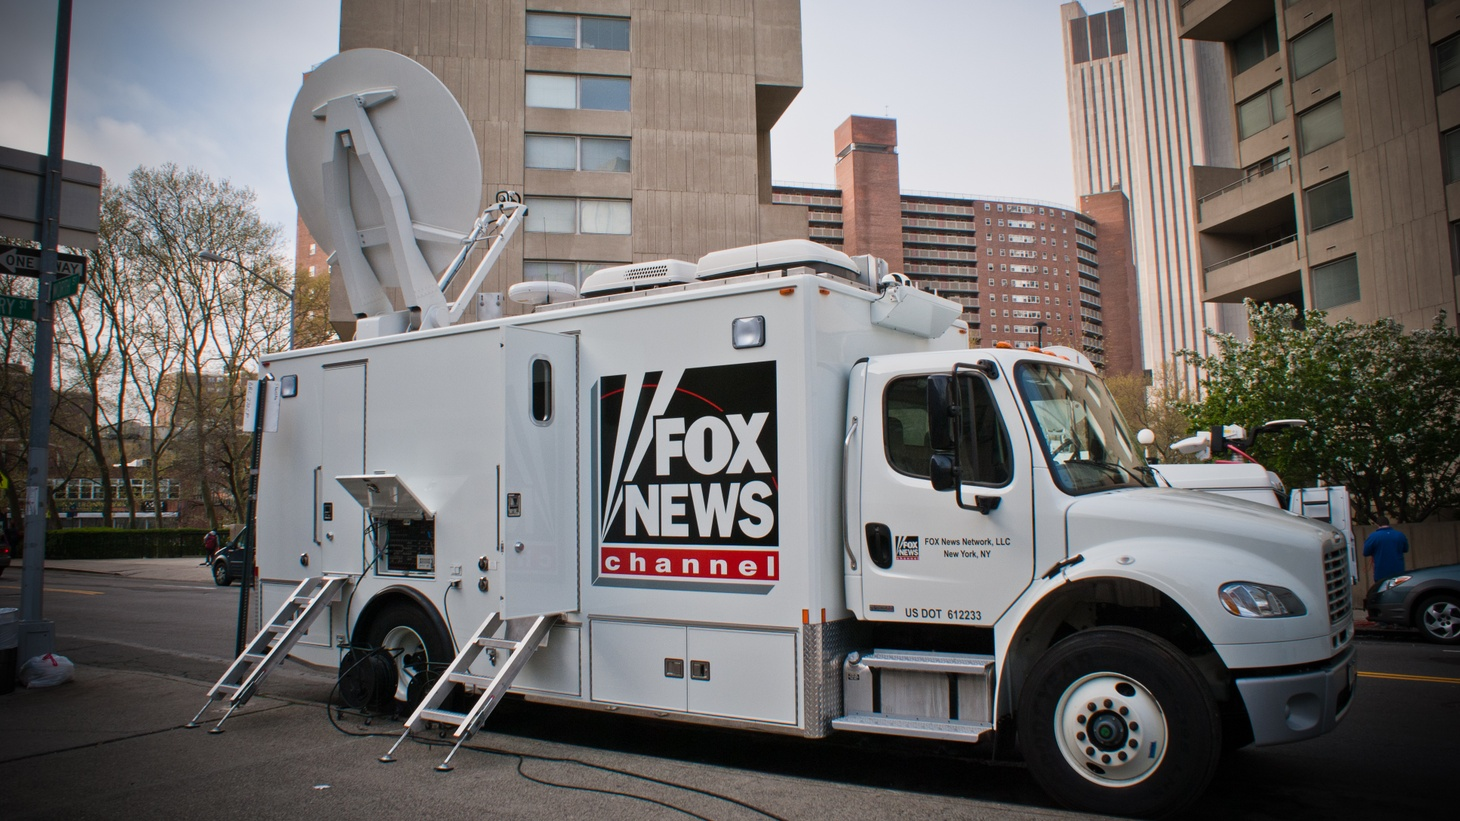 Fox News van.